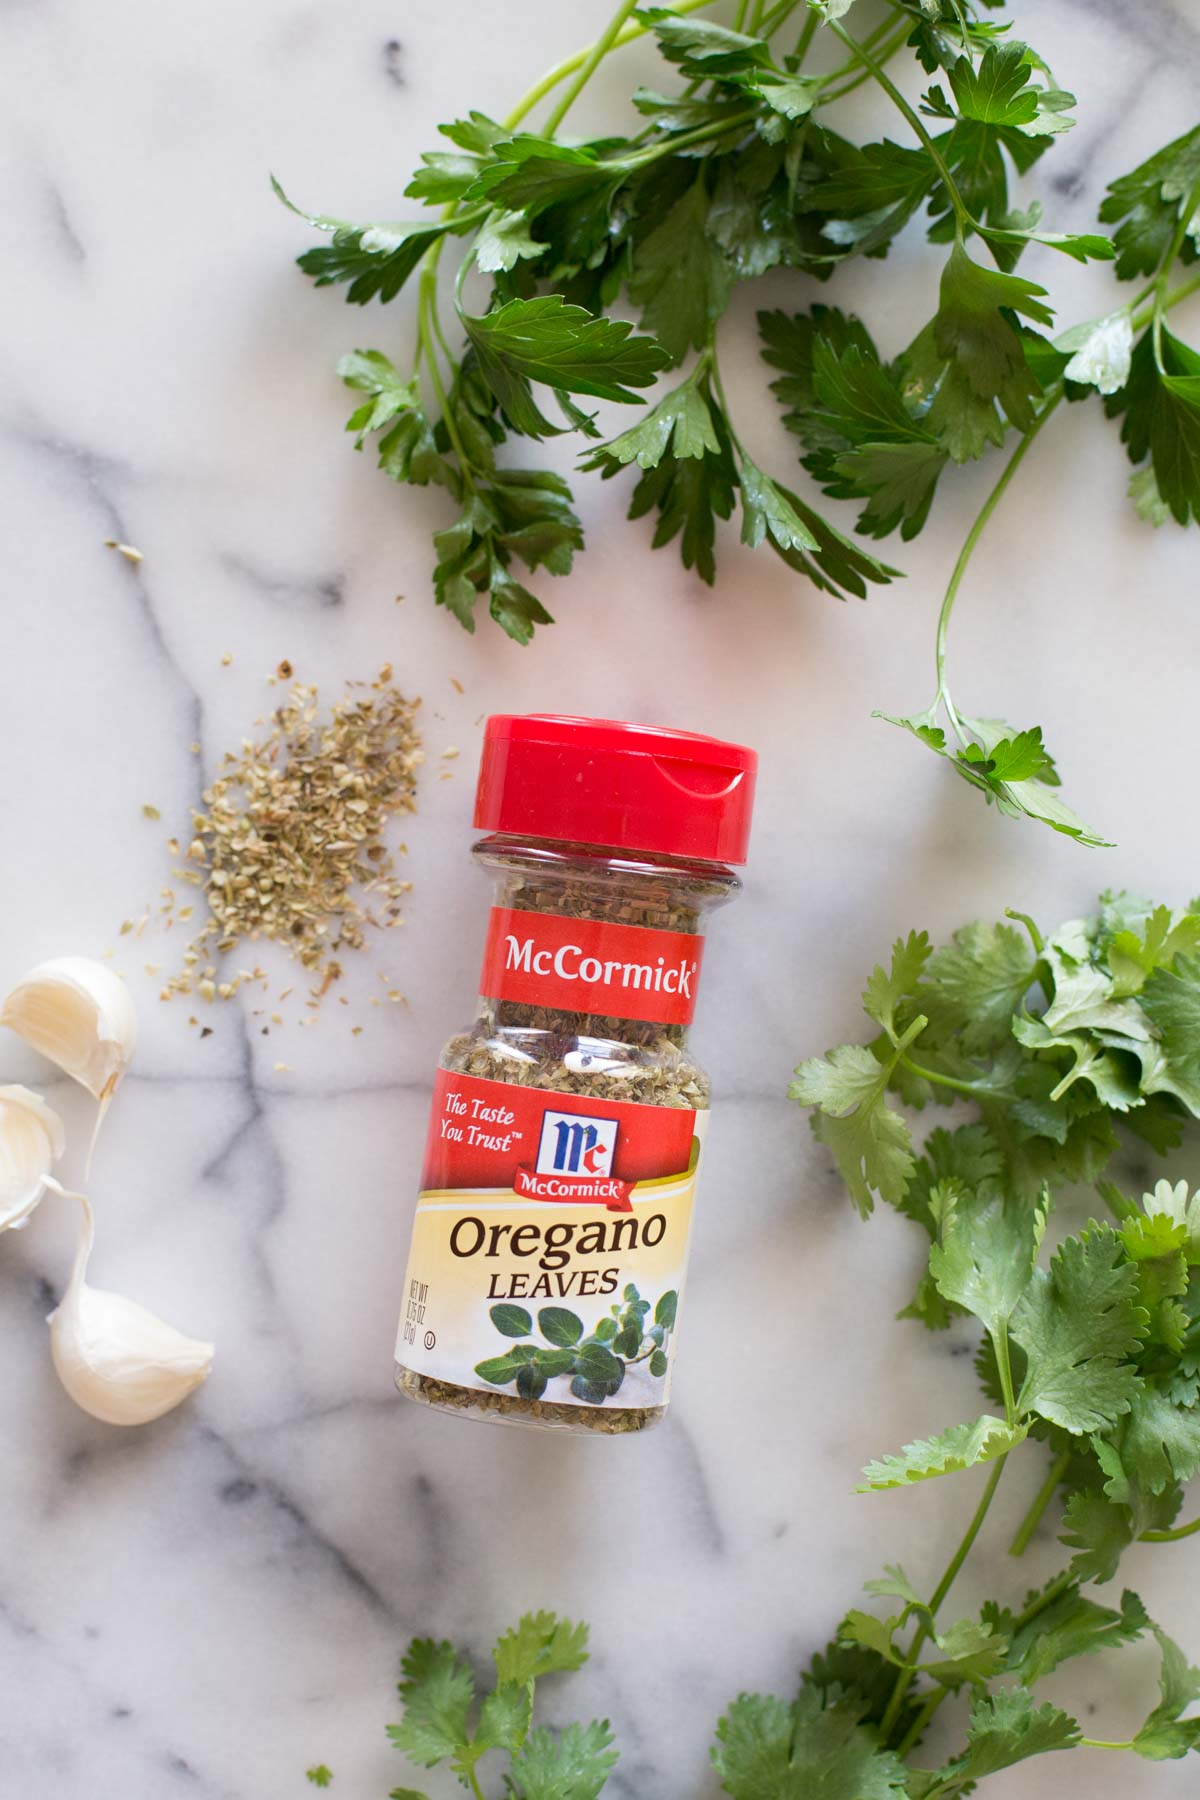 A spice container of McCormick Oregano Leaves, fresh parsley, cilantro, and garlic for the chimichurri.